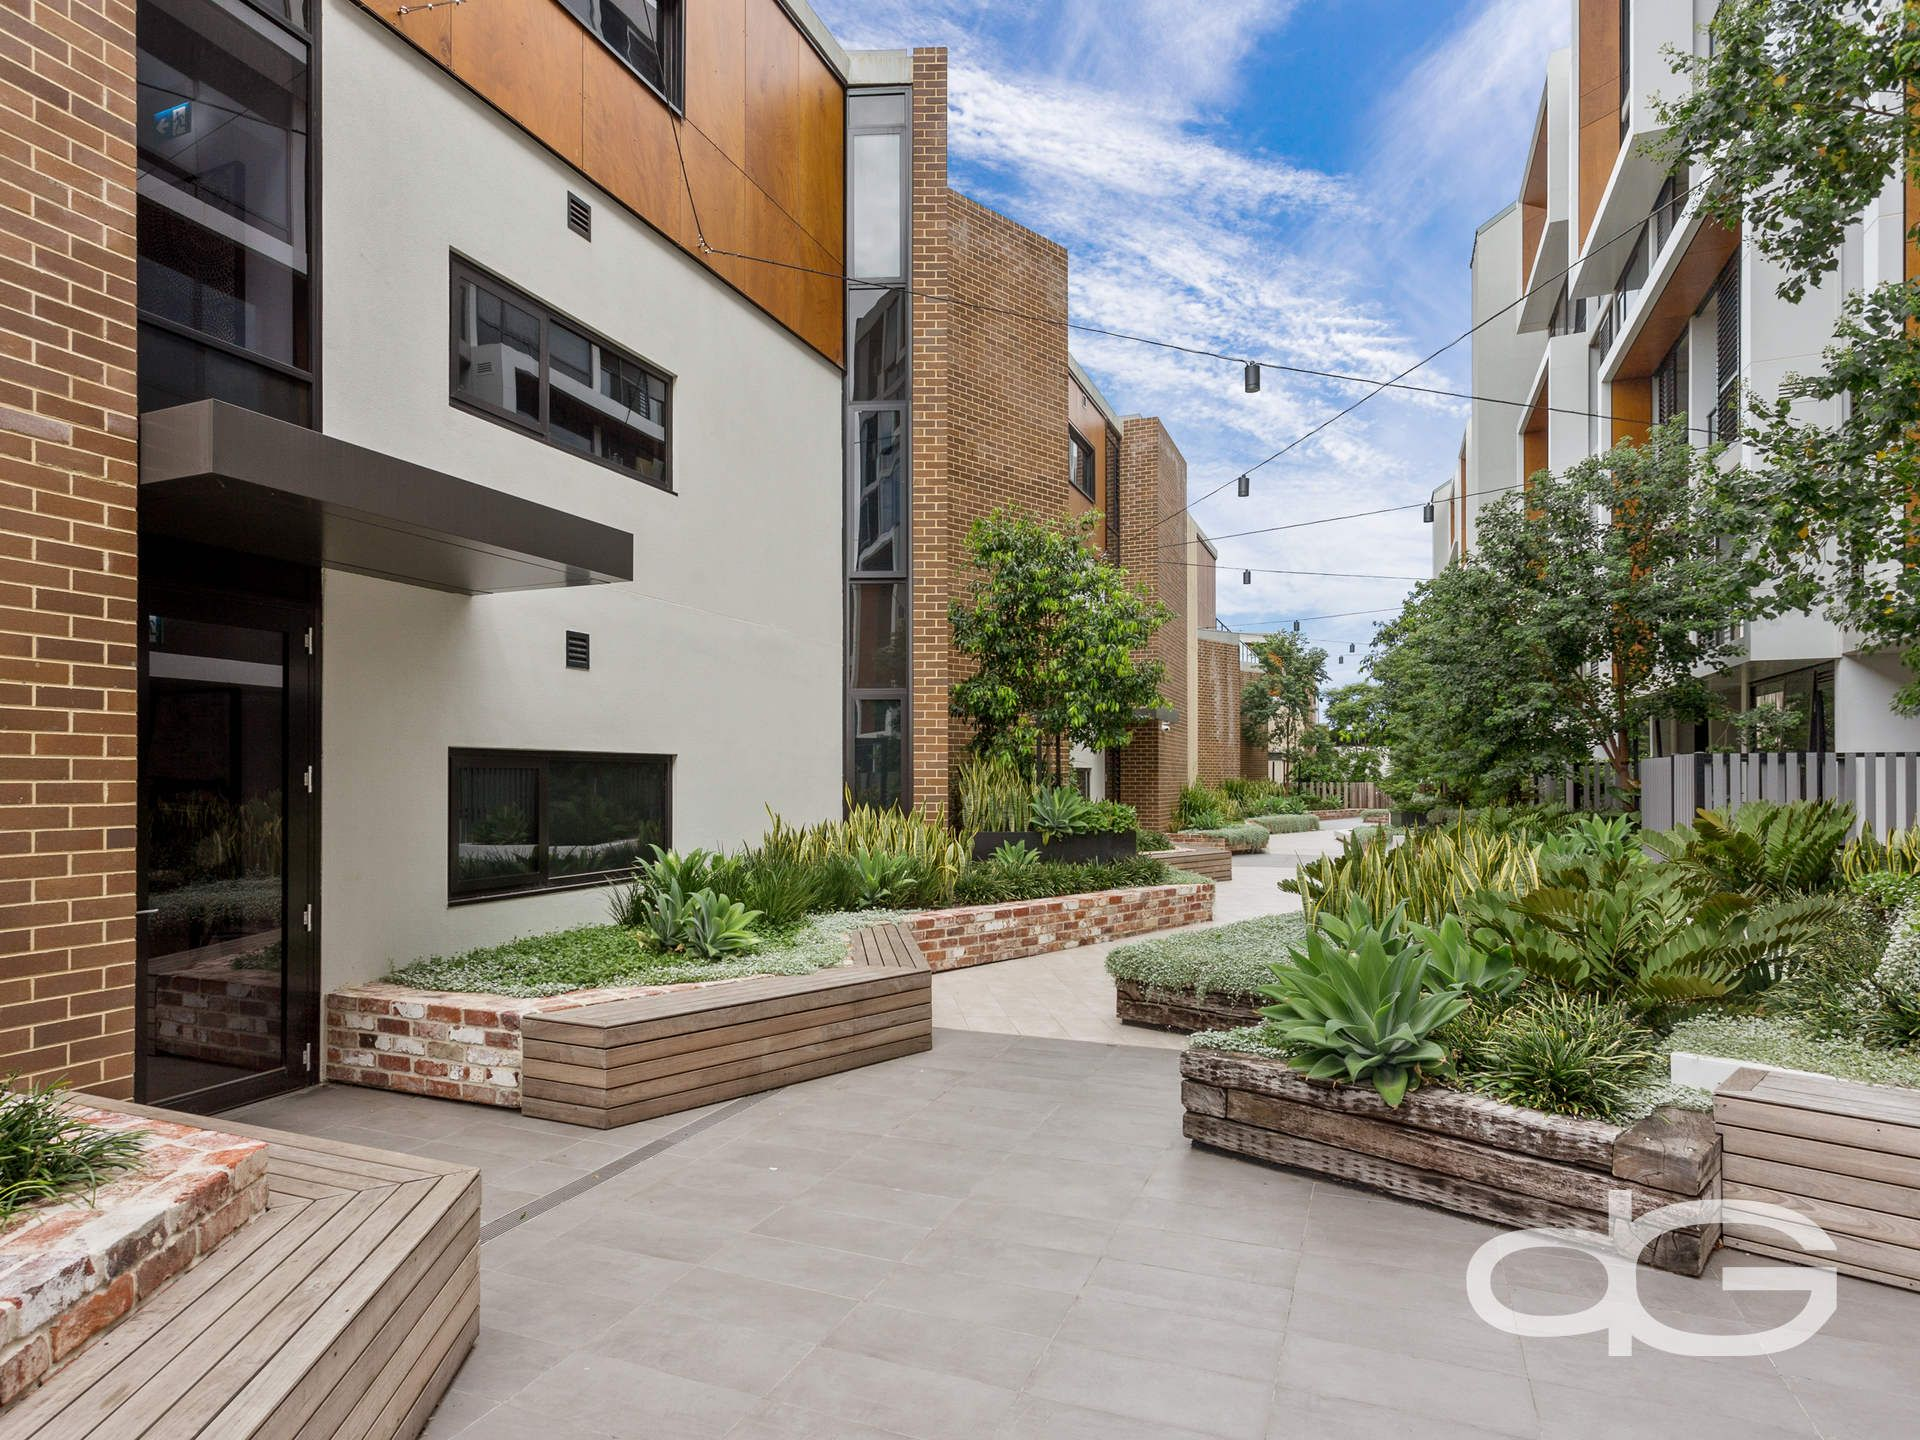 53/51 Queen Victoria Street, Fremantle